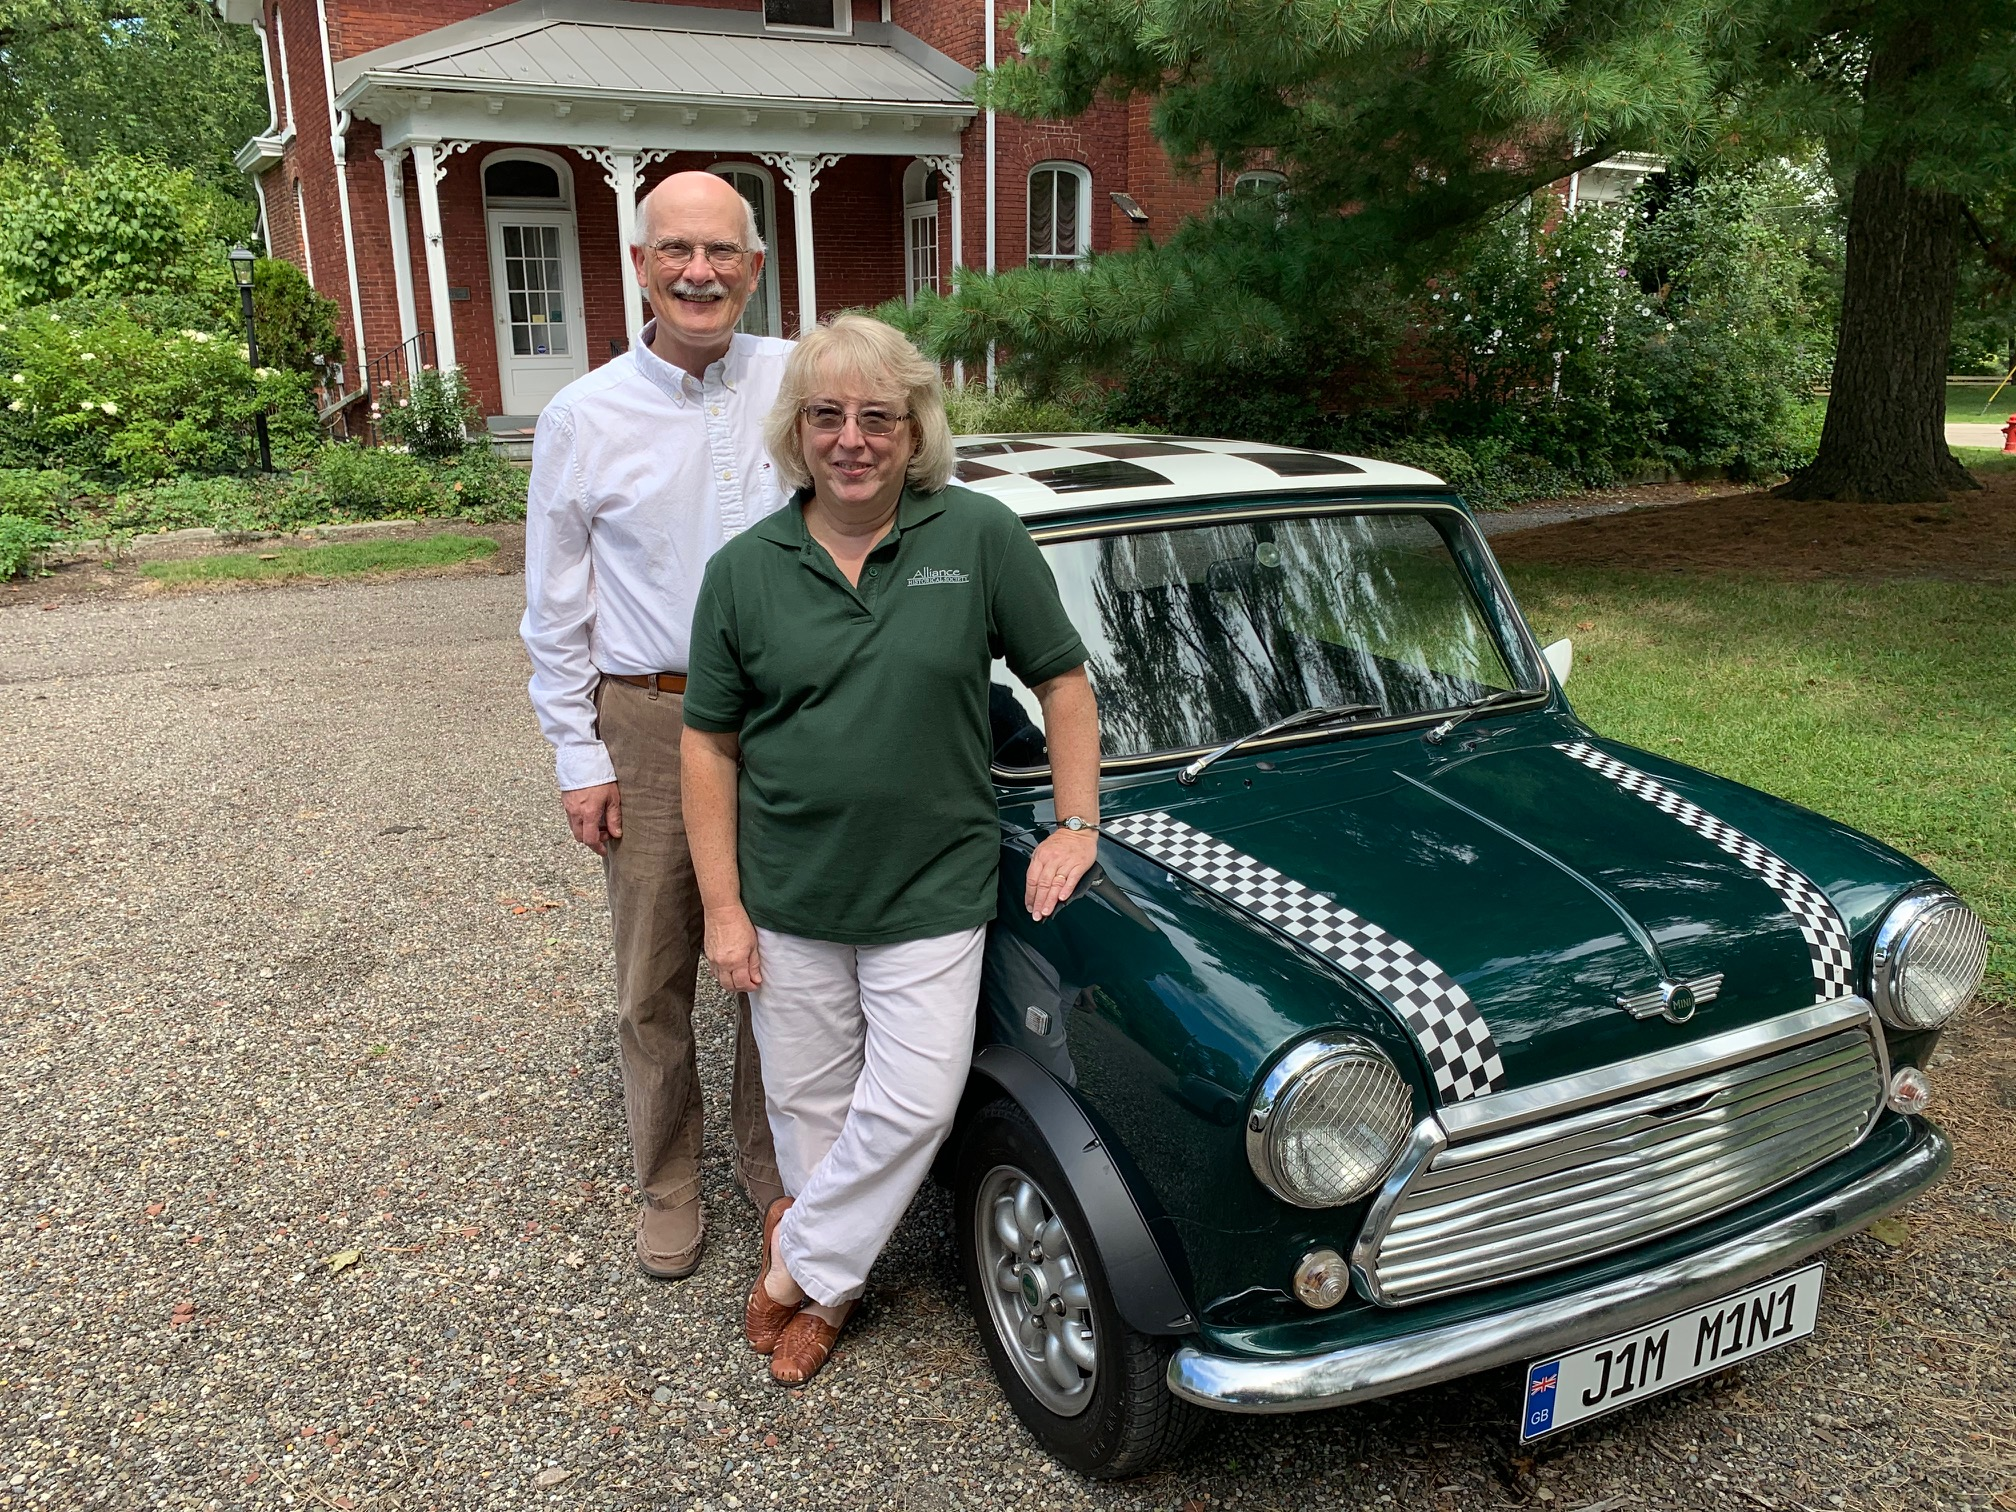 Jim and Karen Perone with their Mini at Mabel Hartzell Historical Home